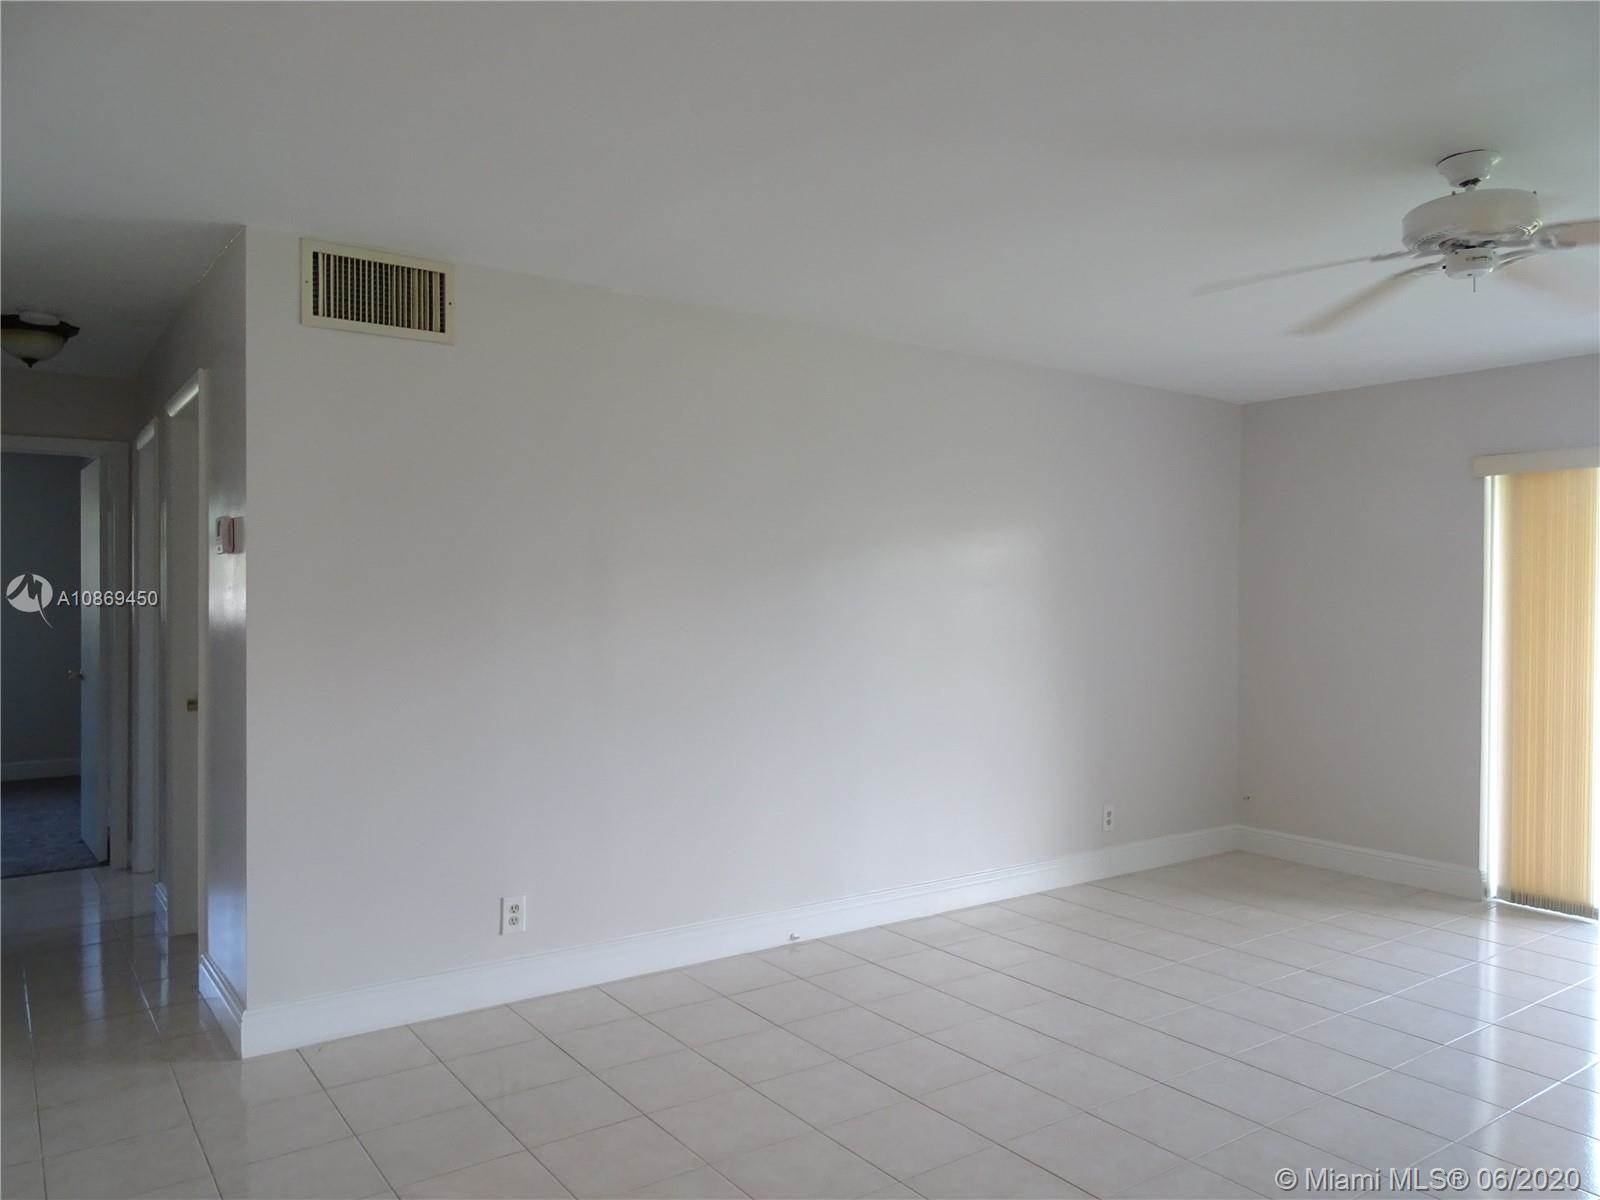 700 Layne Blvd, #111, Hallandale Beach, FL 33009